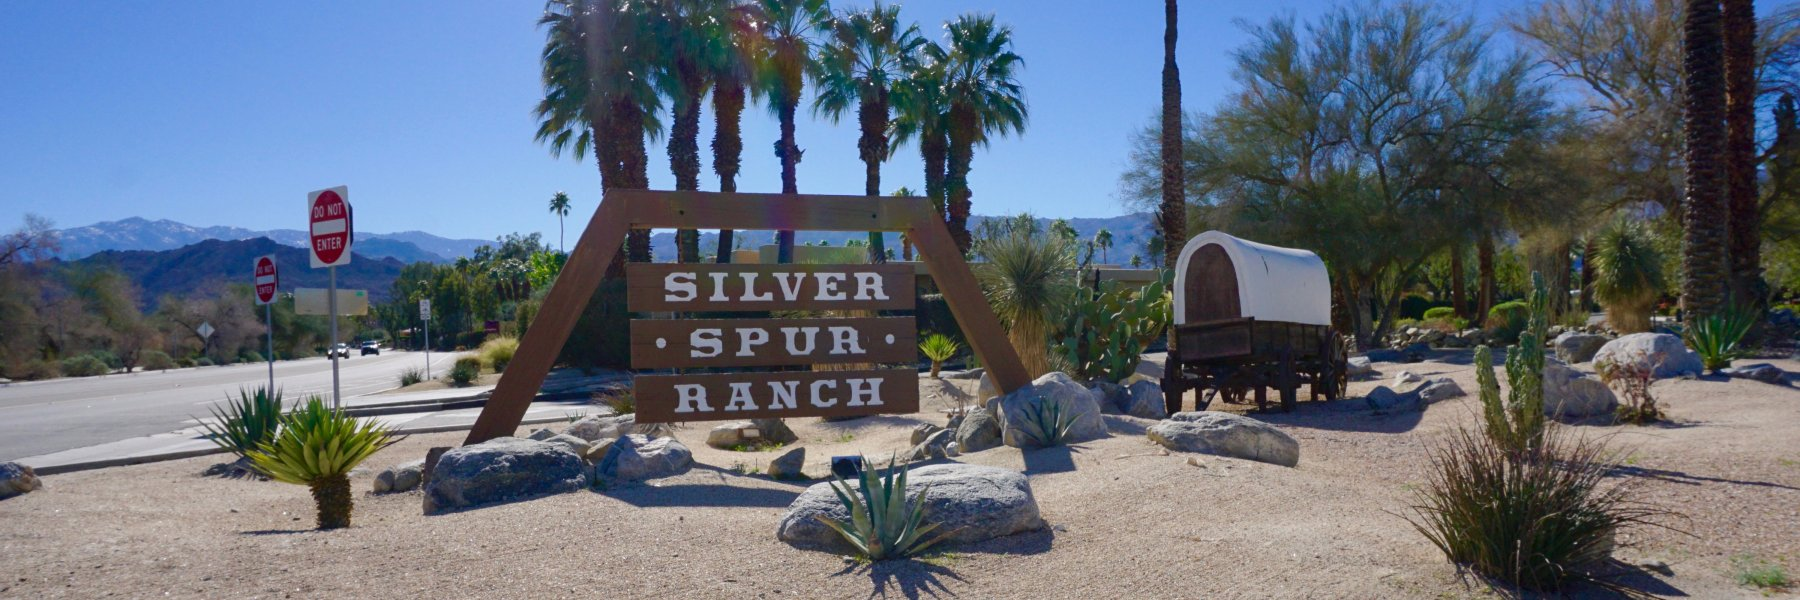 Silver Spur Ranch is a community of homes in Palm Desert California